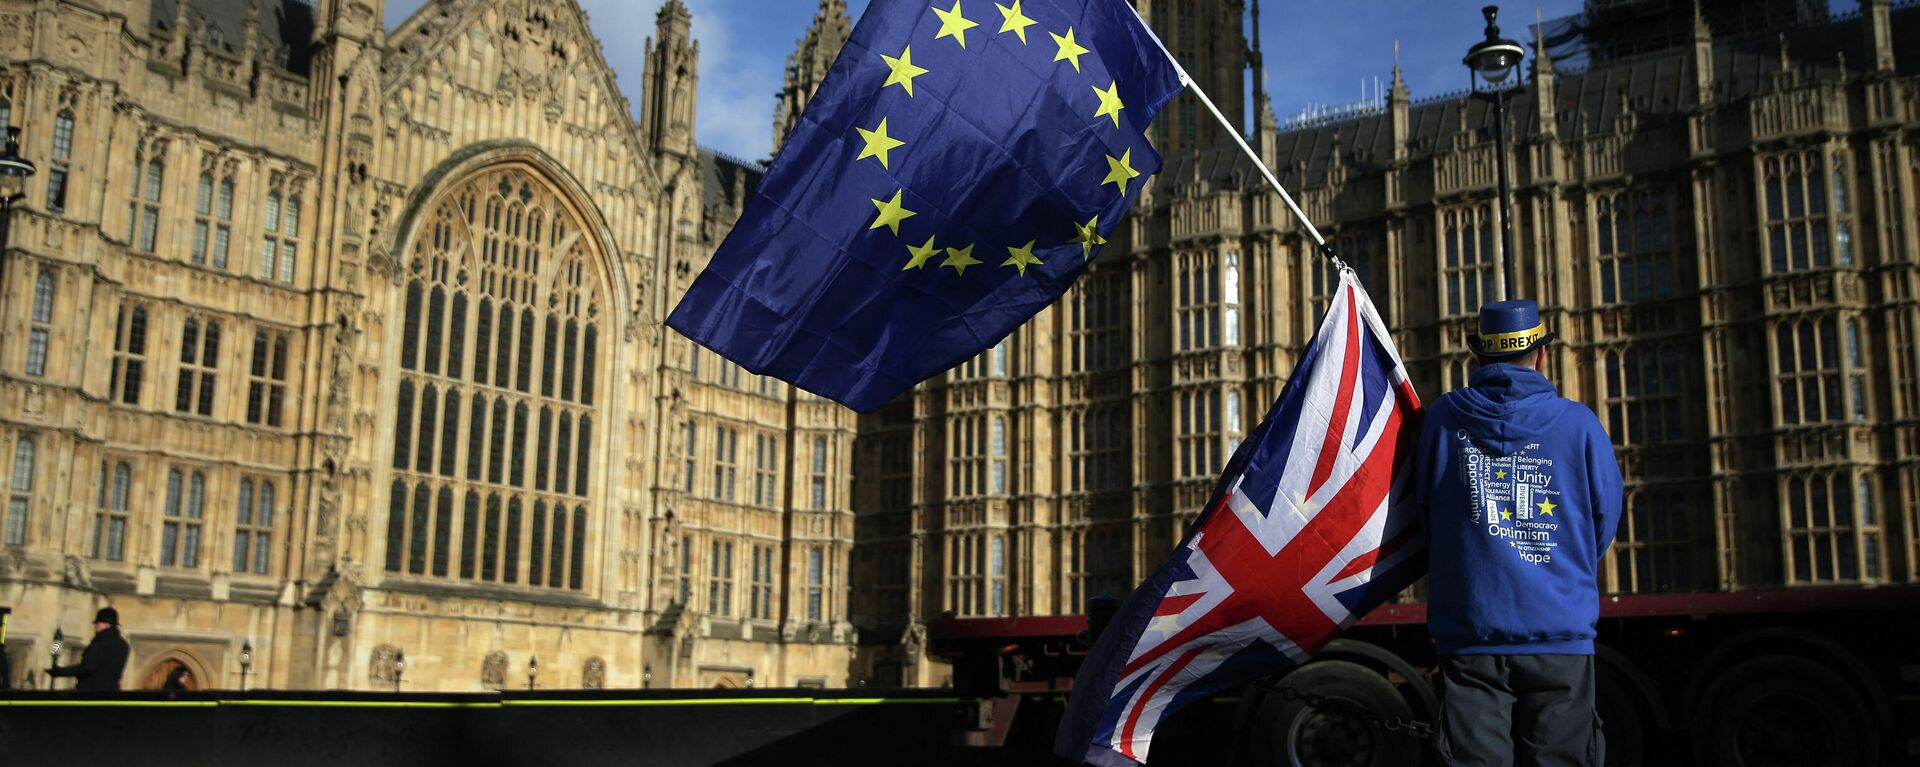 Pro-European Union,(EU), anti-Brexit demonstrator Steve Bray holds the EU and UK flags outside the Houses of Parliament, in central London on January 22, 2018 - Sputnik International, 1920, 09.10.2021